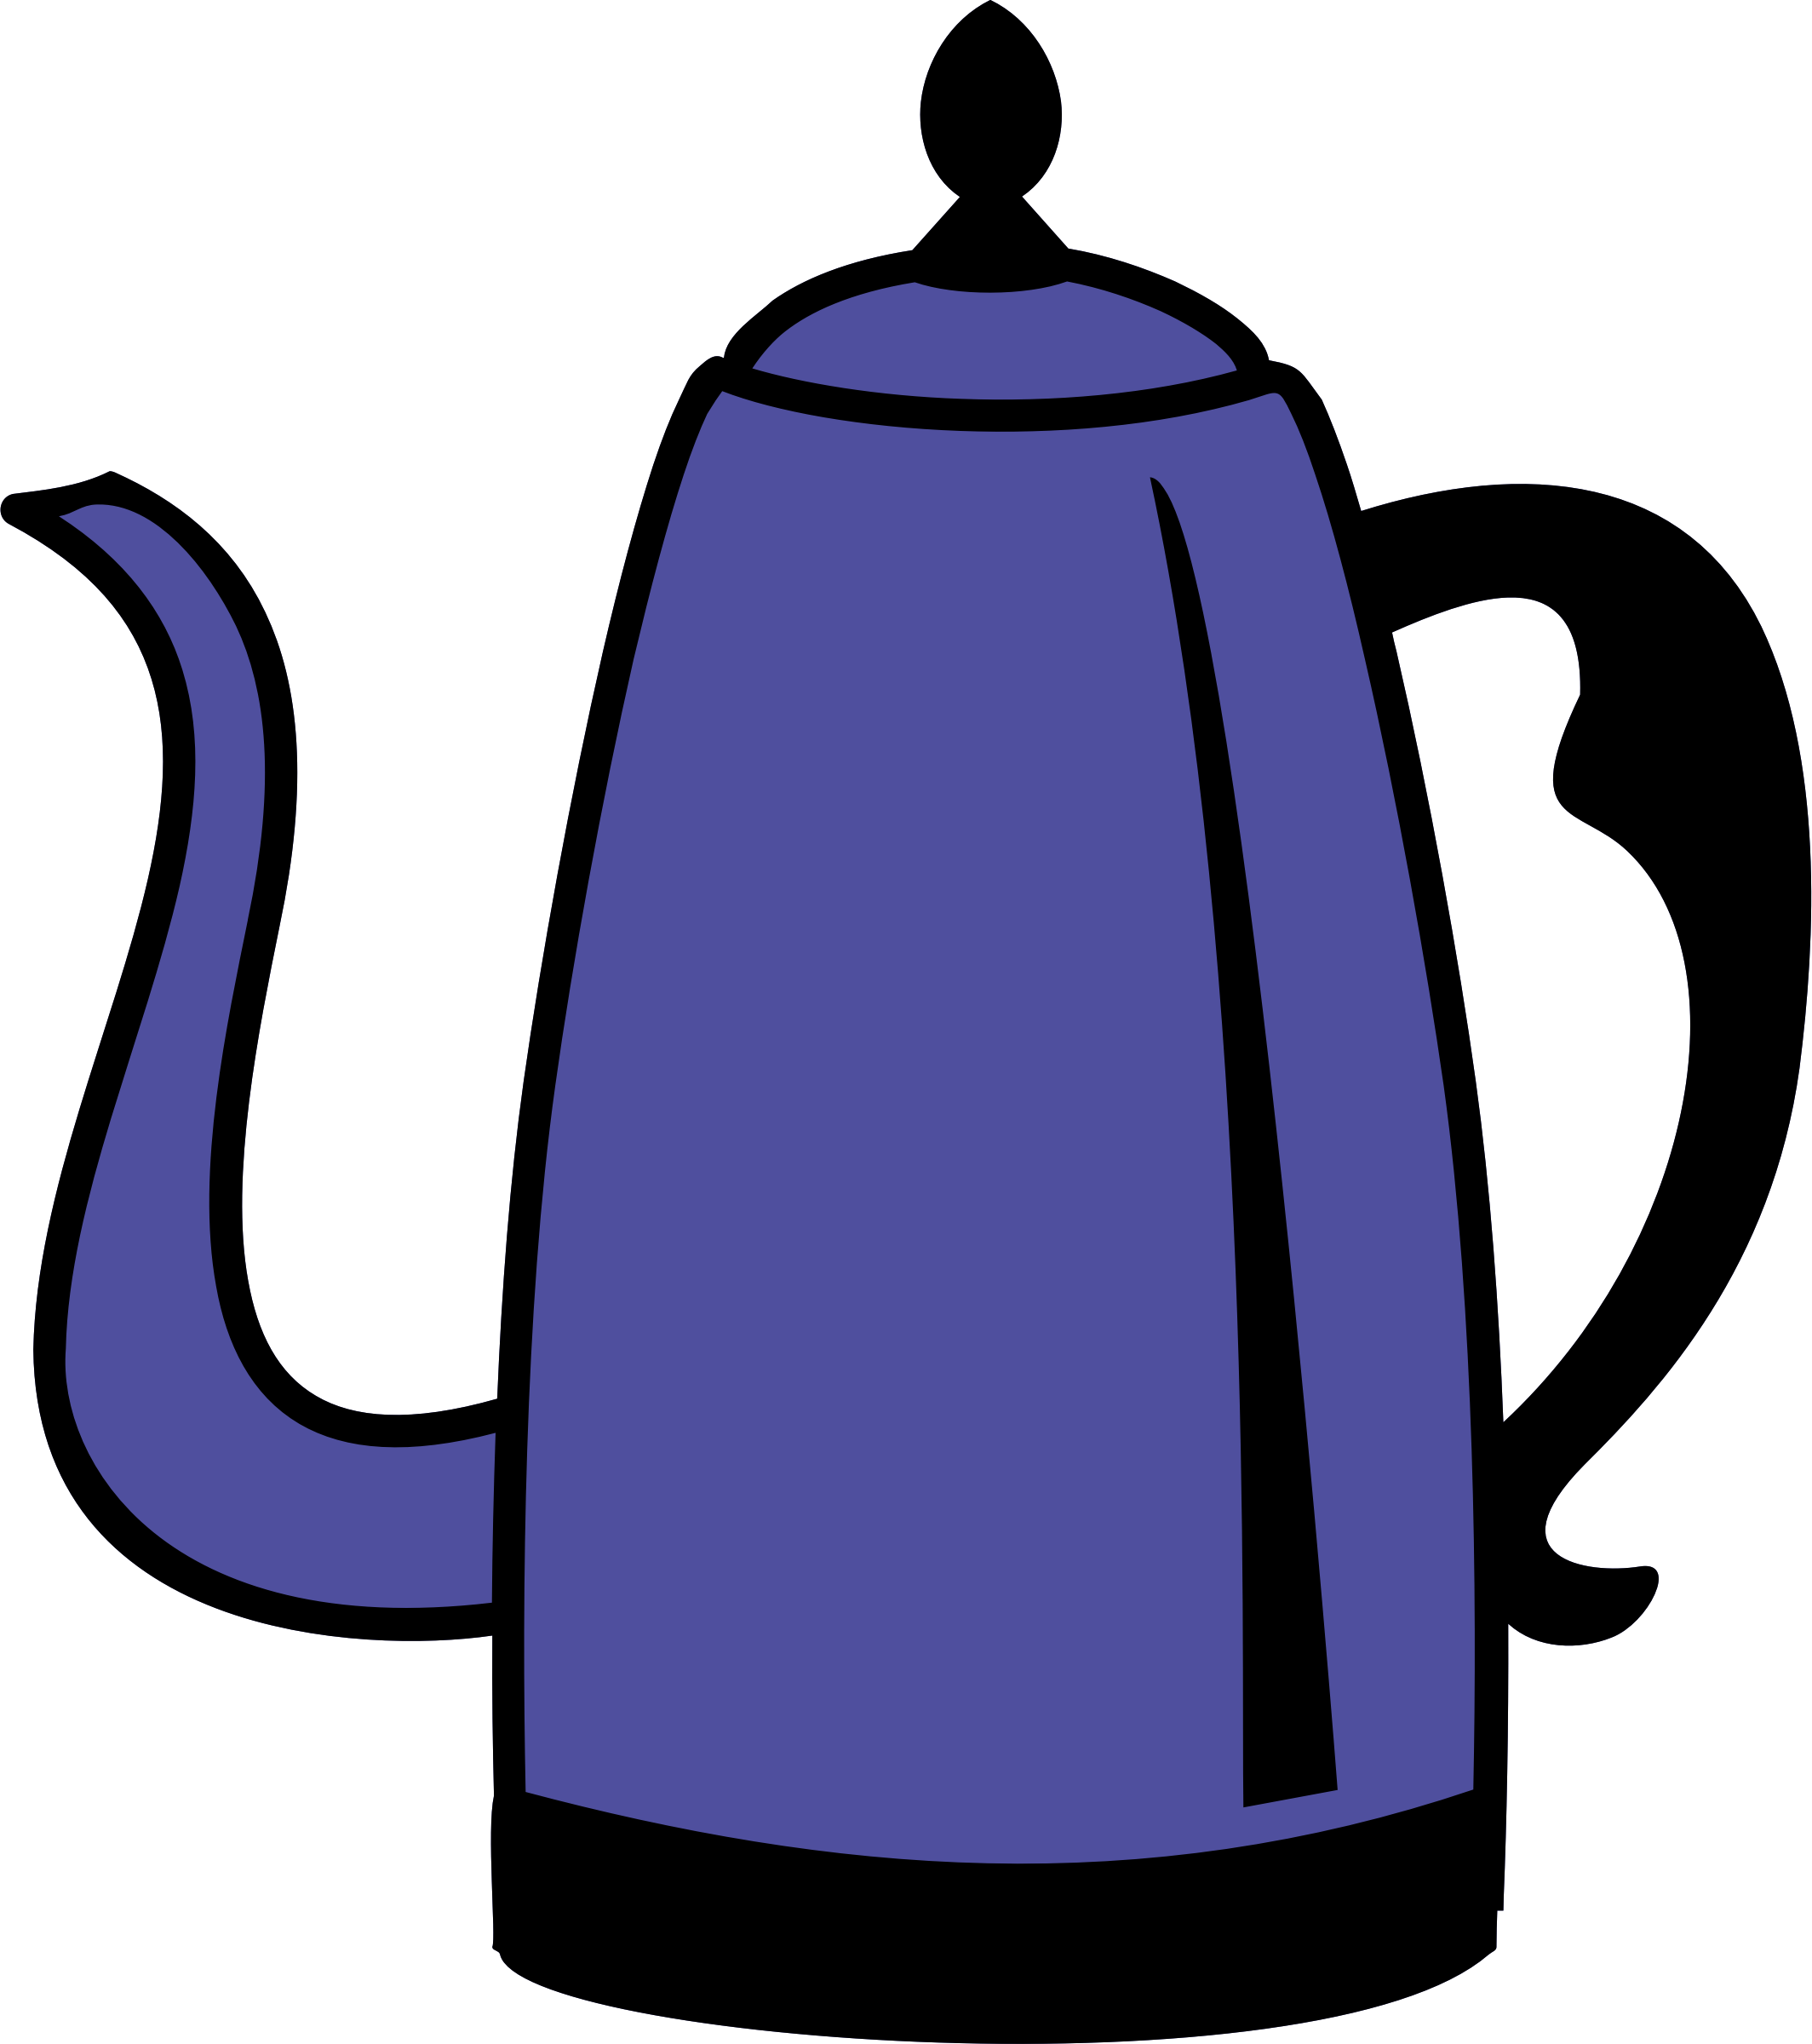 Coffee pot by Firkin